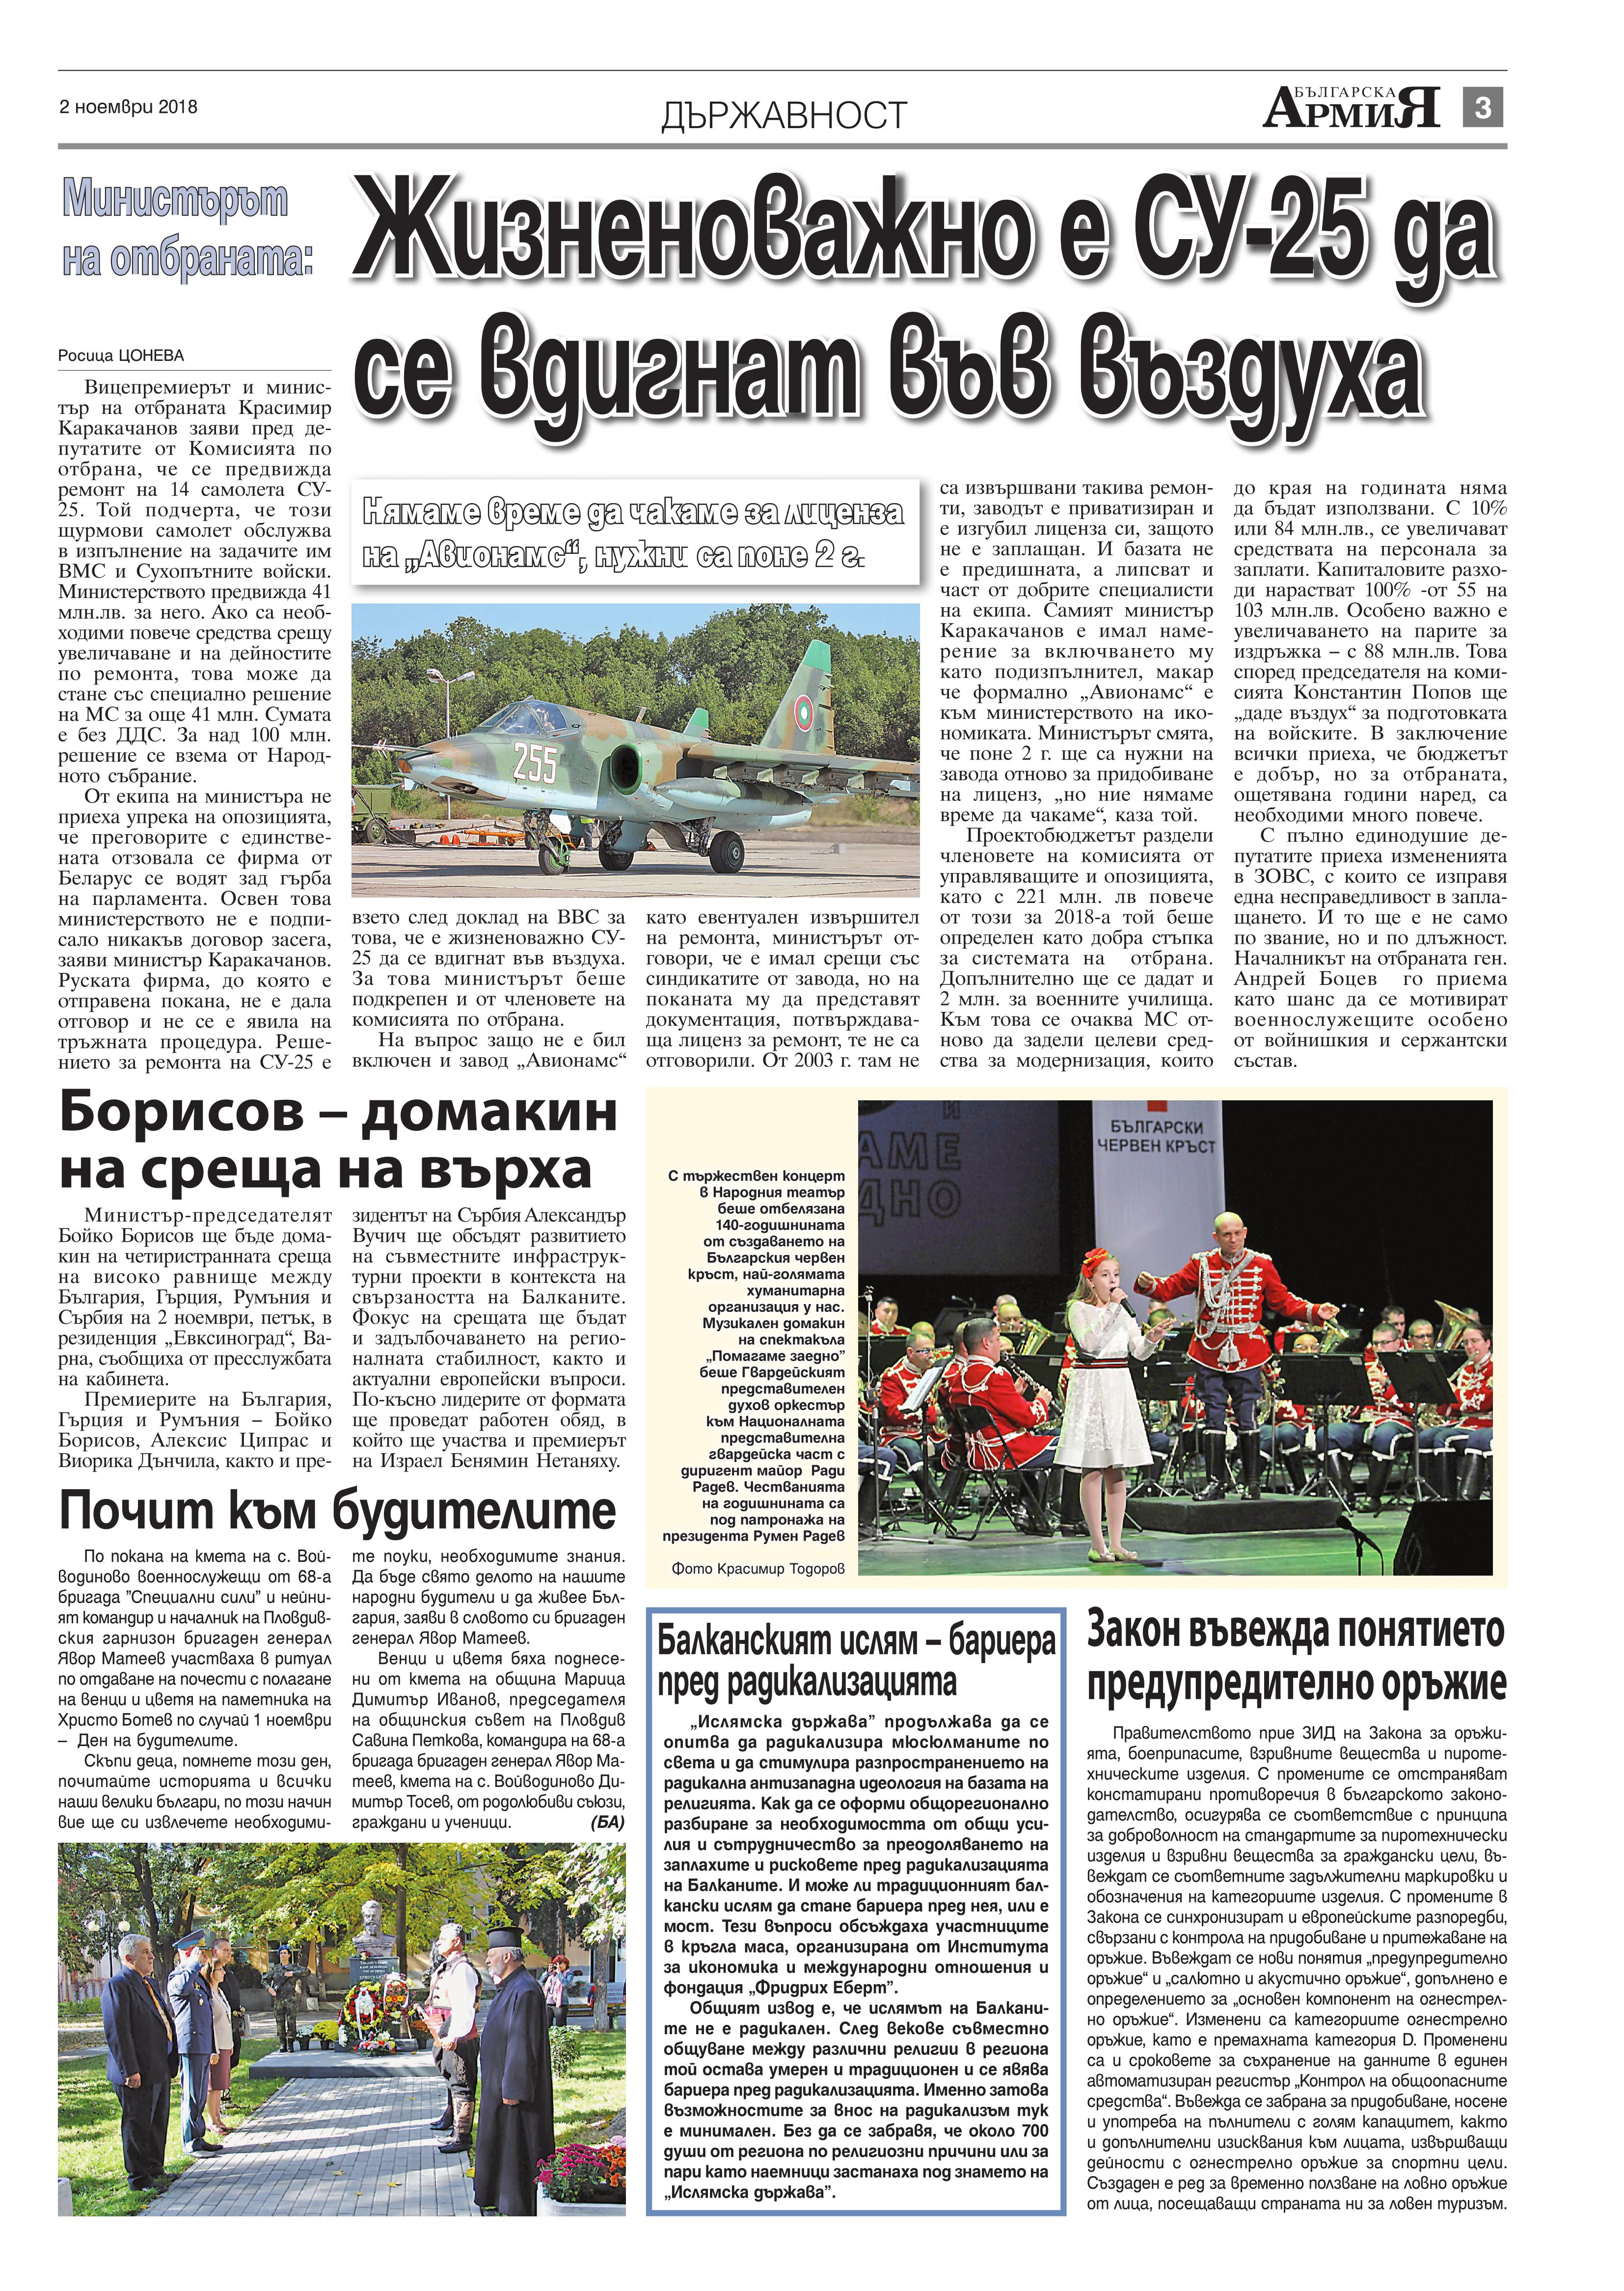 https://armymedia.bg/wp-content/uploads/2015/06/03.page1_-69.jpg